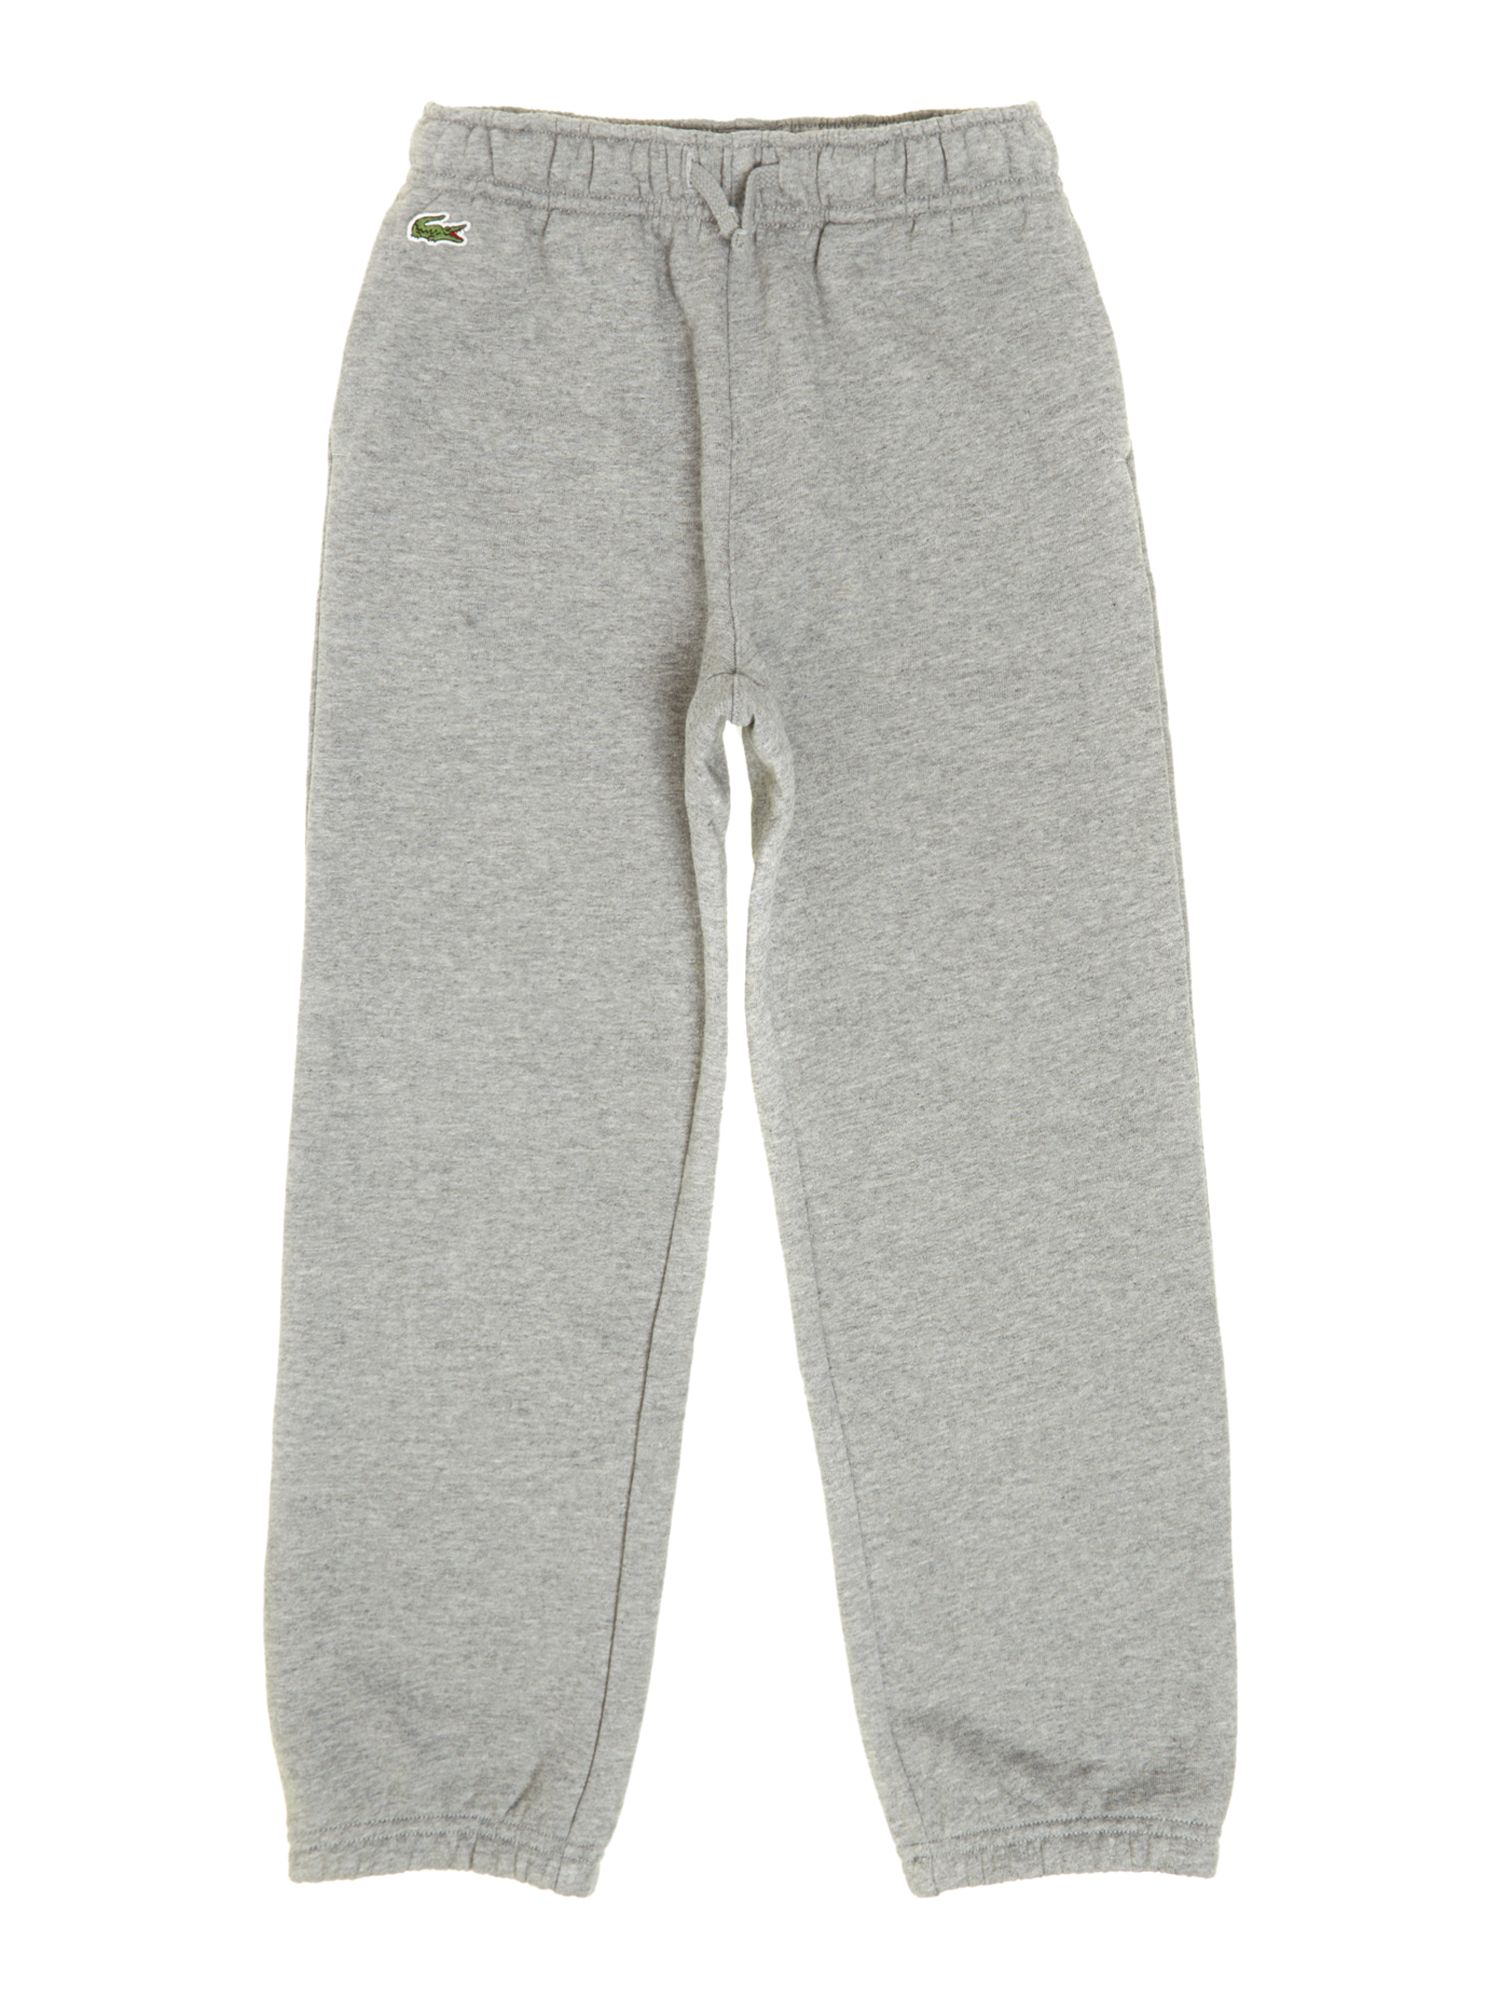 Boys tracksuit bottom with croc